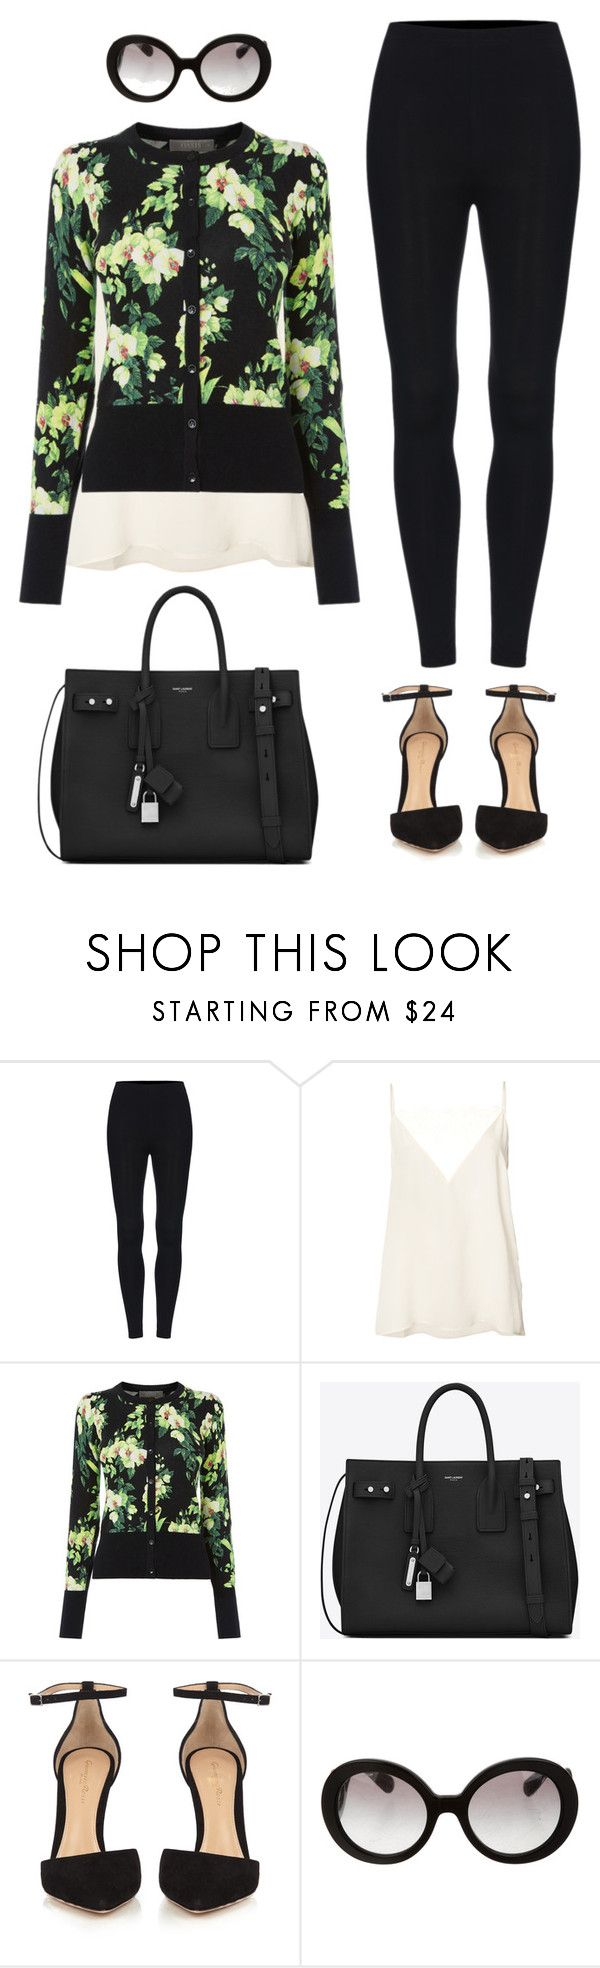 """""""Leggings outfit #9"""" by glamupparties ❤ liked on Polyvore featuring Anine Bing, Yves Saint Laurent, Gianvito Rossi and Prada"""